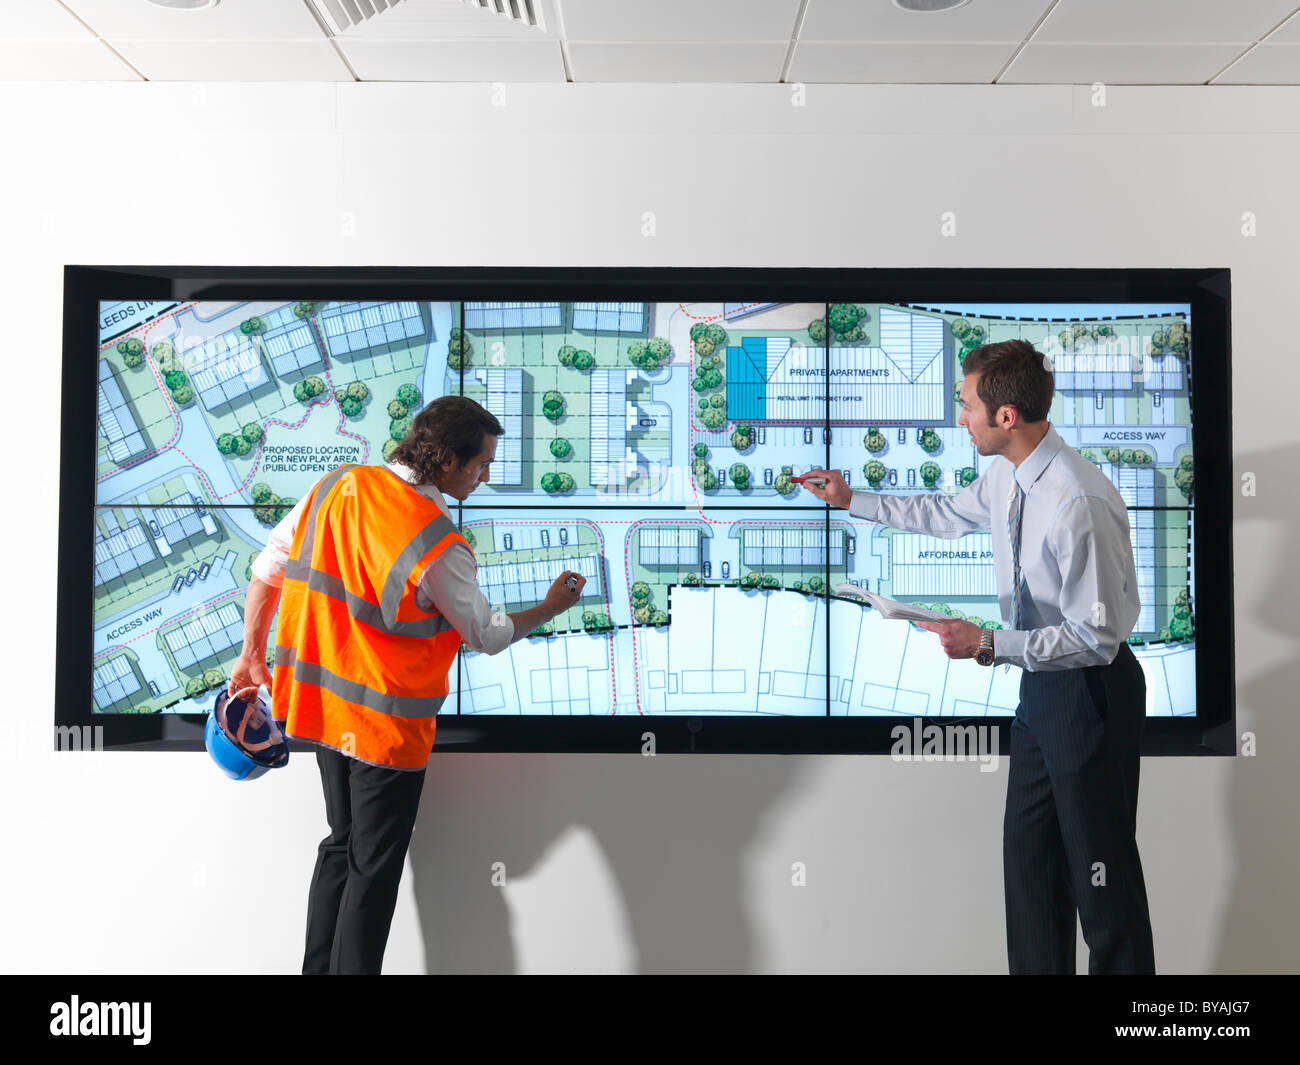 Town planners look at plans on screen - Stock Image